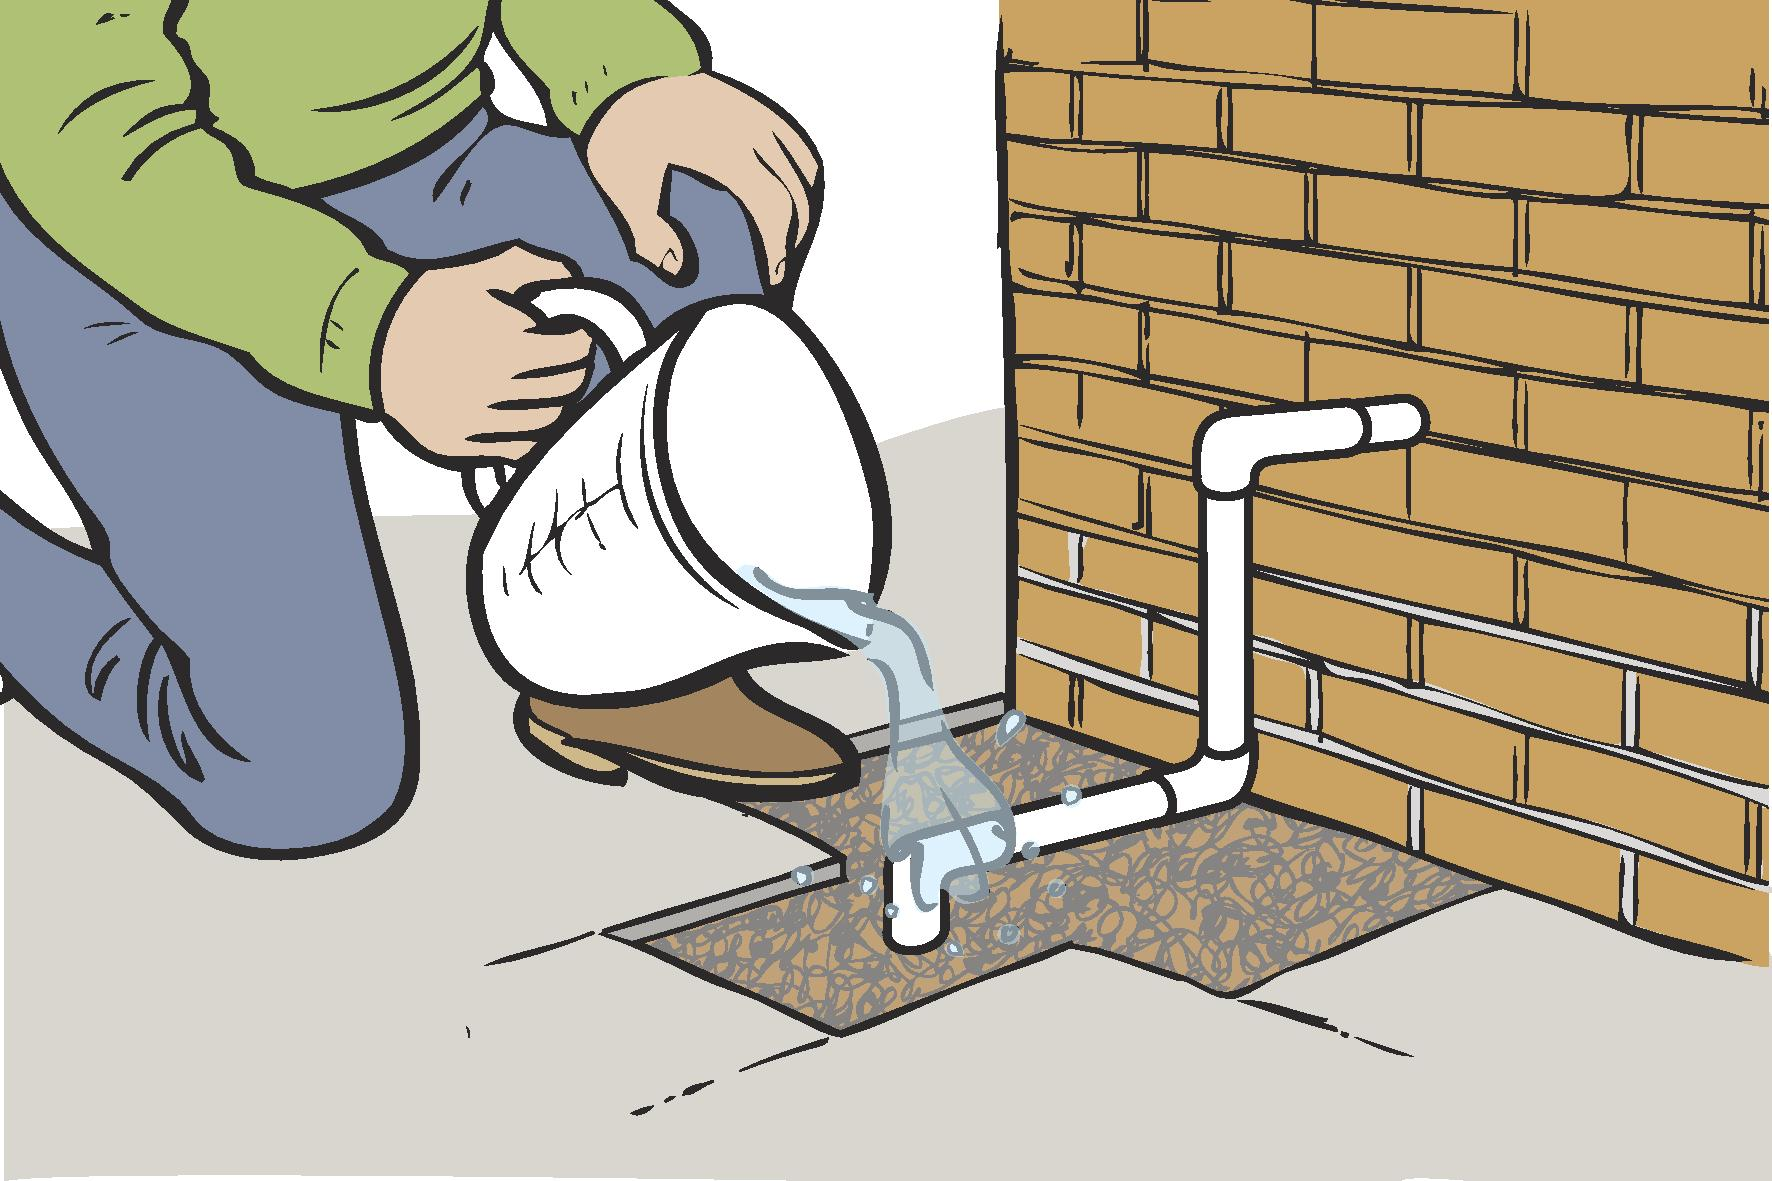 Pour warm water on the pipe